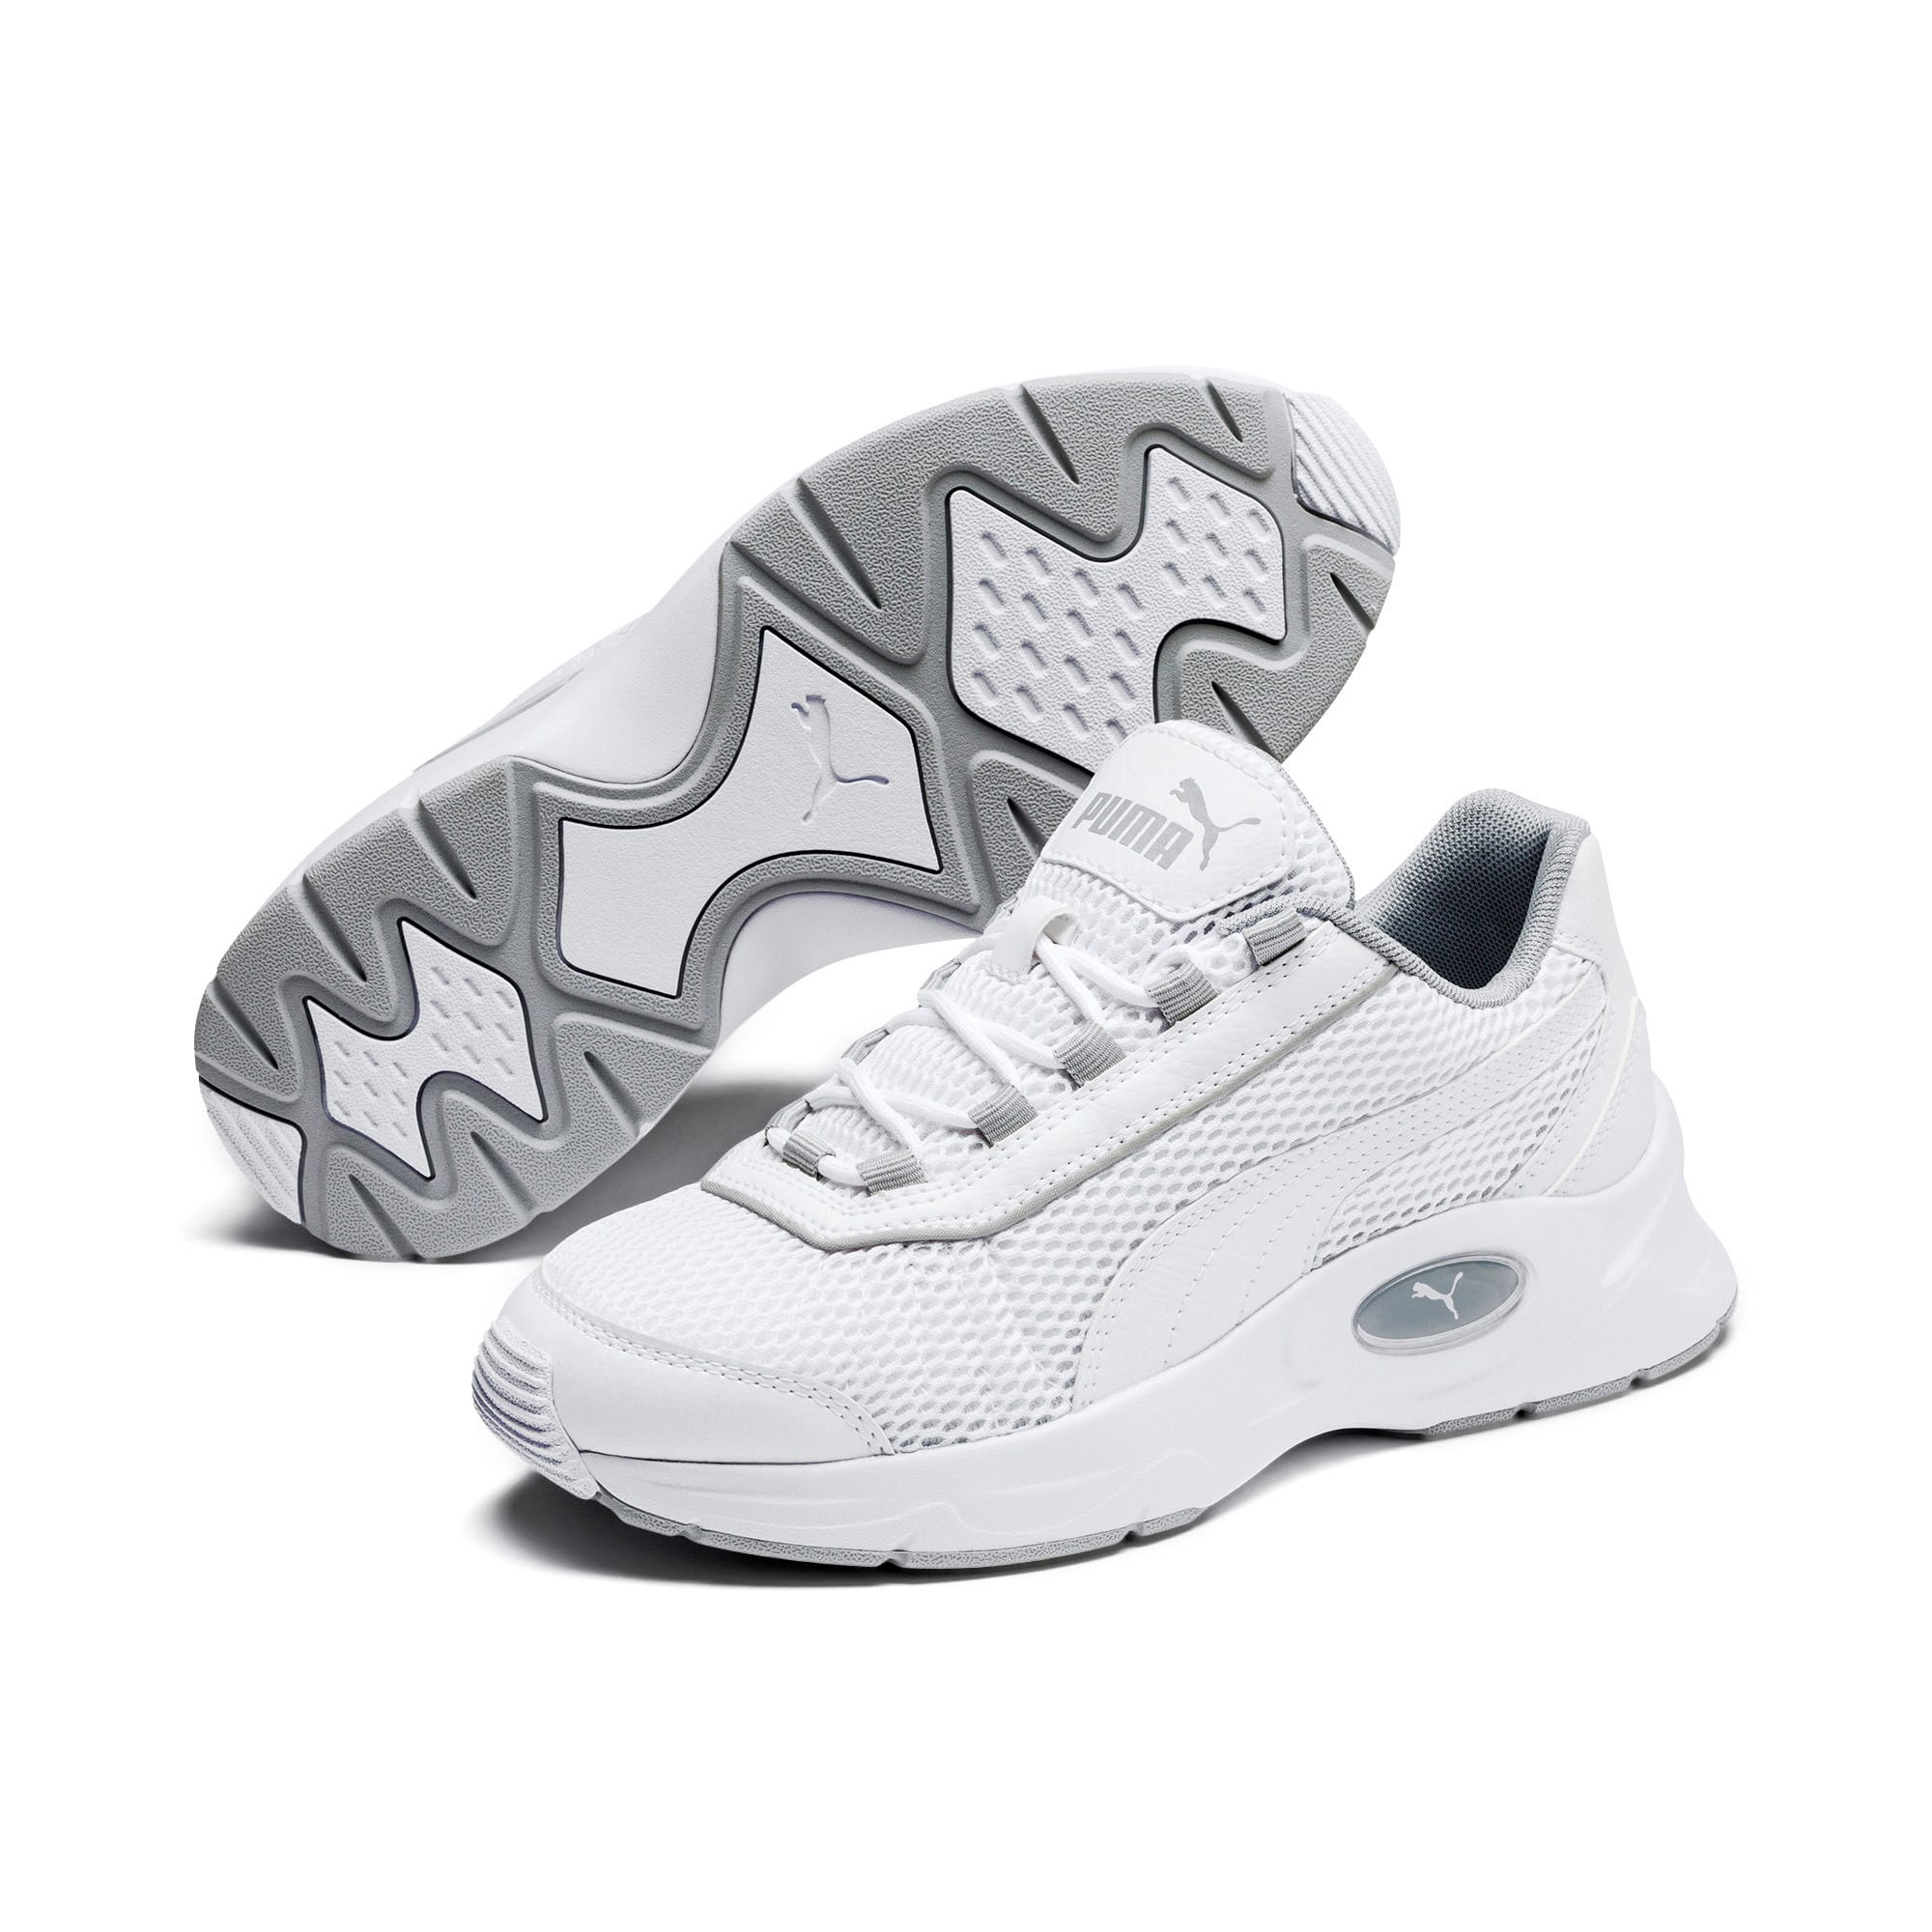 Thumbnail 2 of Nucleus Youth Trainers, Puma White-High Rise, medium